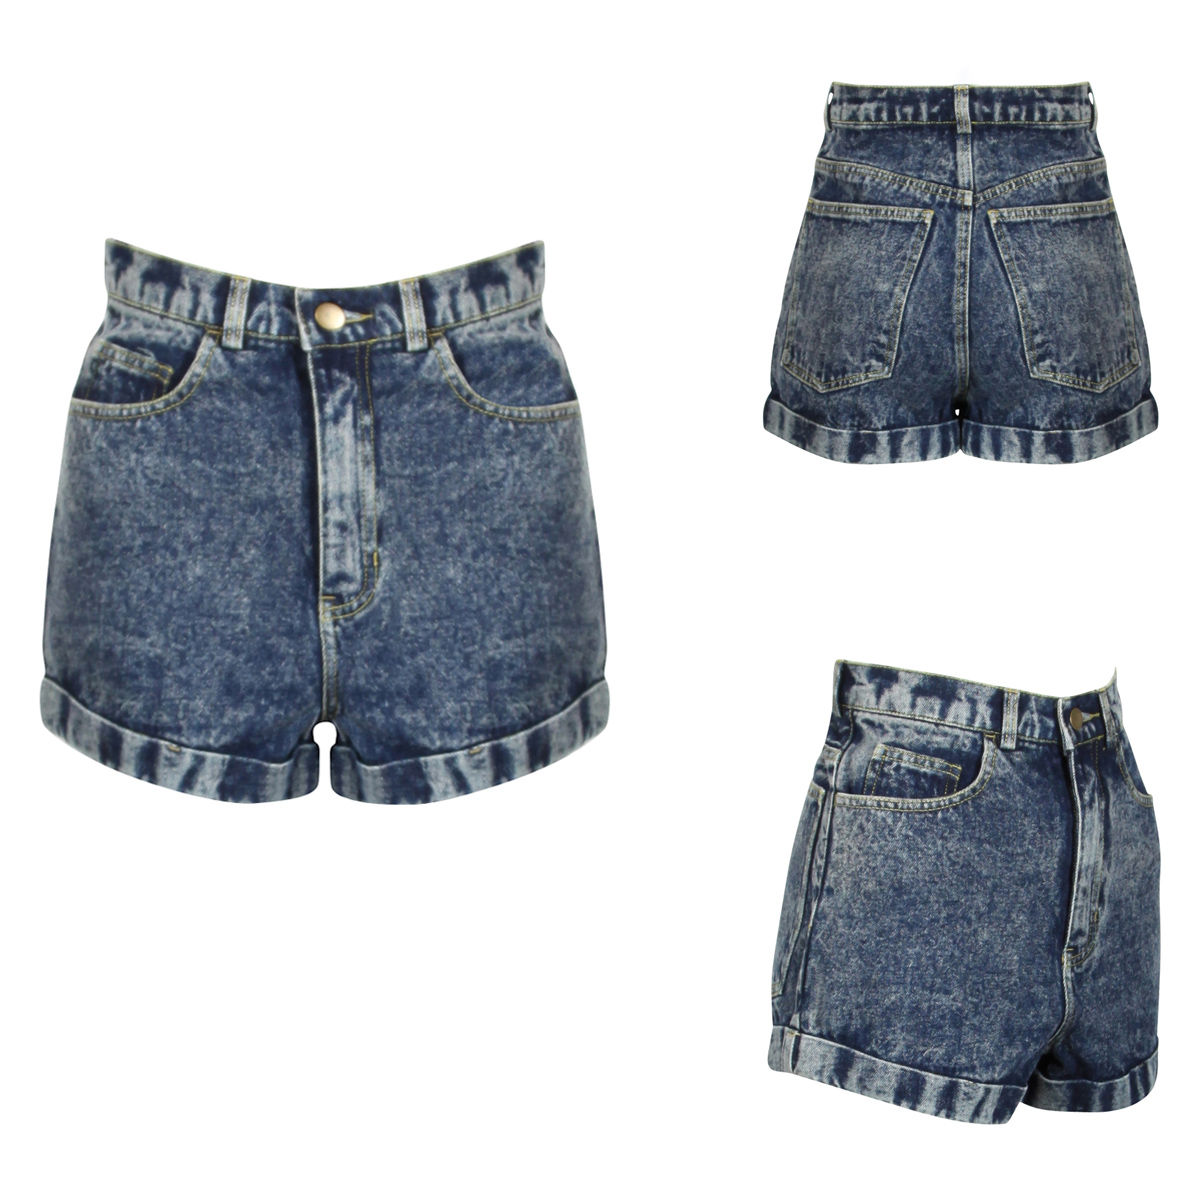 NEW WOMENS GLAMOROUS BLUE DENIM HIGHWAISTED ACID WASH DISTRESSED LADIES SHORTS Enlarged Preview